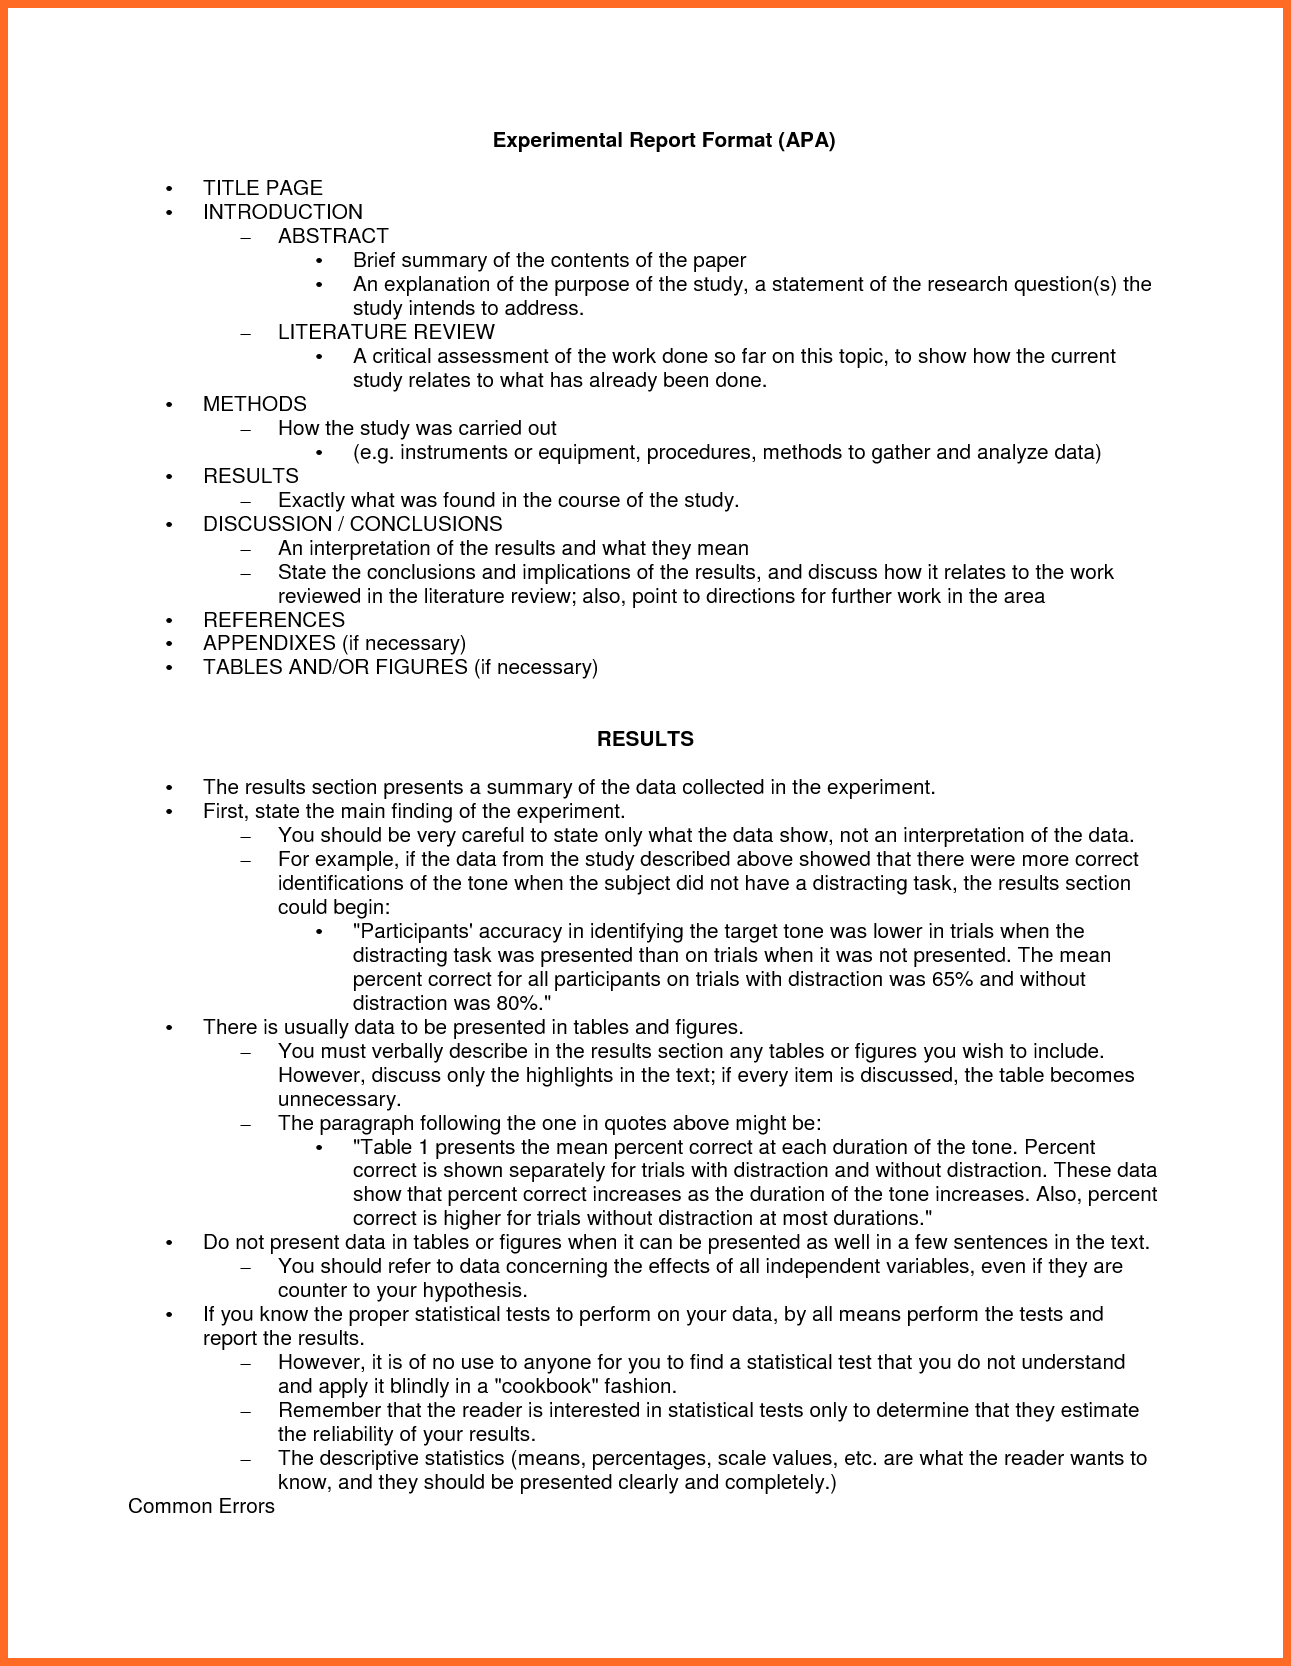 ? Sample apa style paper template. Formatting APA Paper Cover Page And Referencing The Bibliography. 2019-02-08